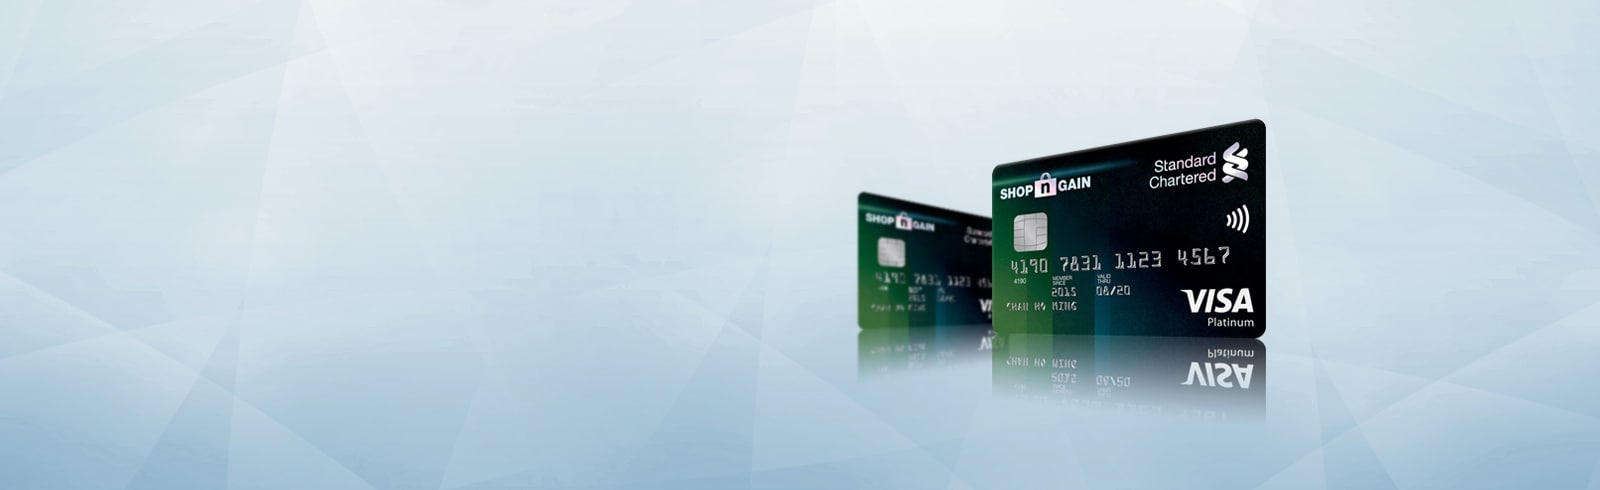 Standard Chartered SHOP'n GAIN Platinum Credit Card